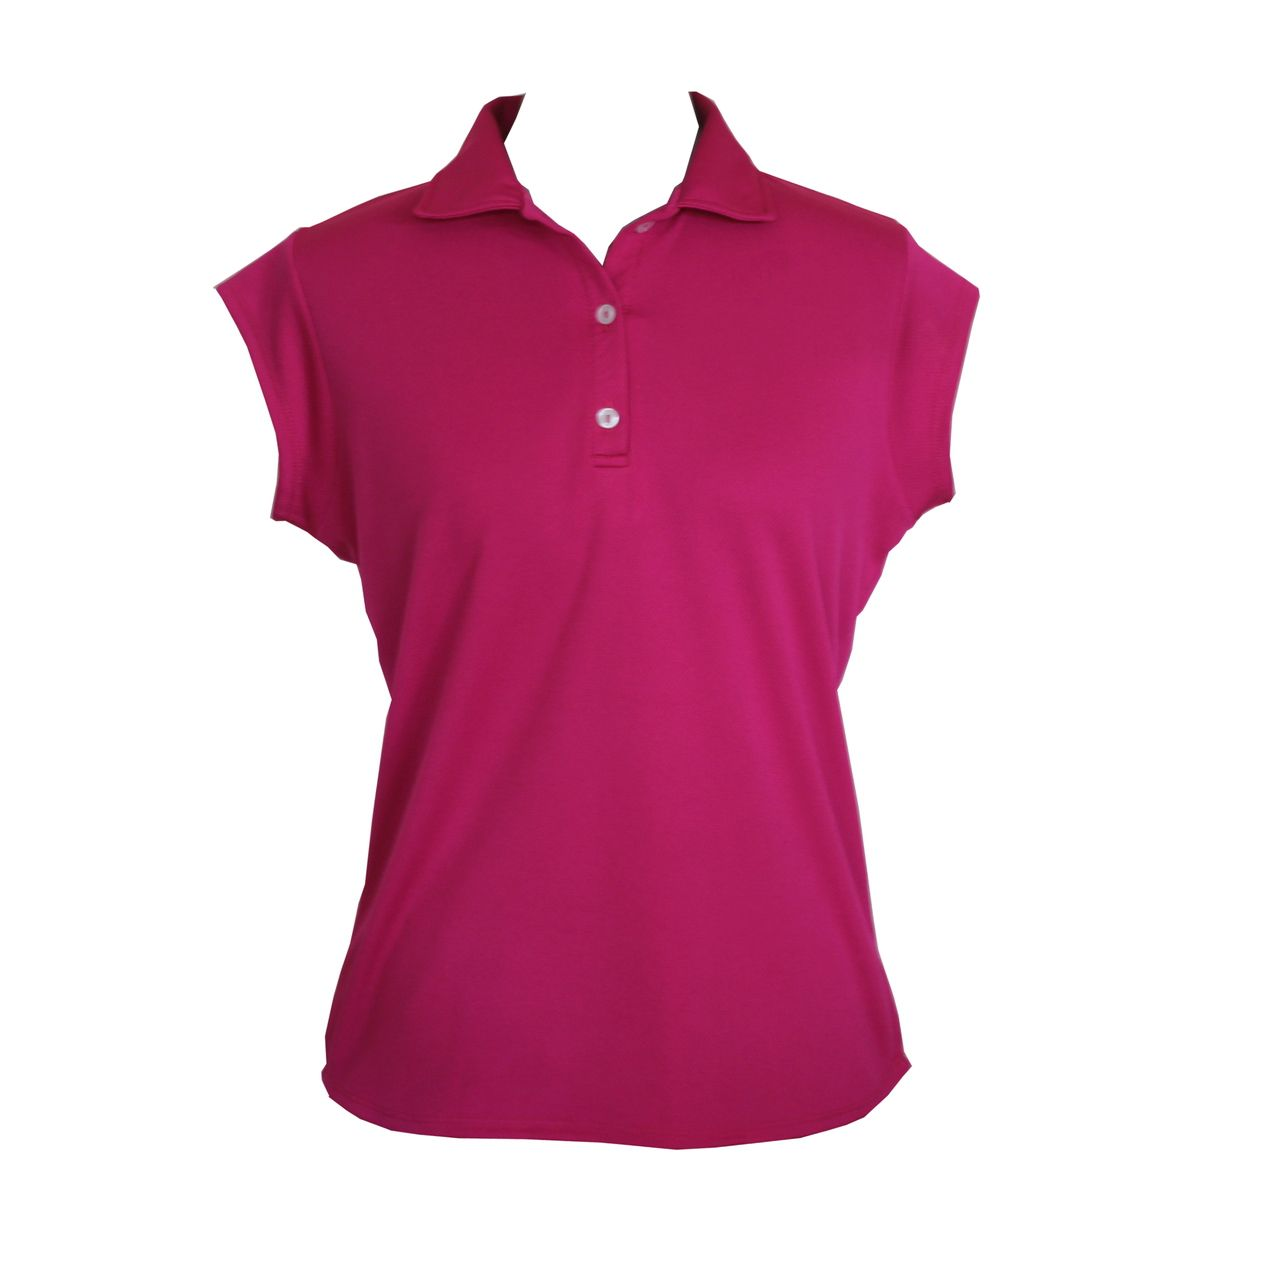 10ea5f9a218b7 Ladies sports shirt in hot pink. Button up front